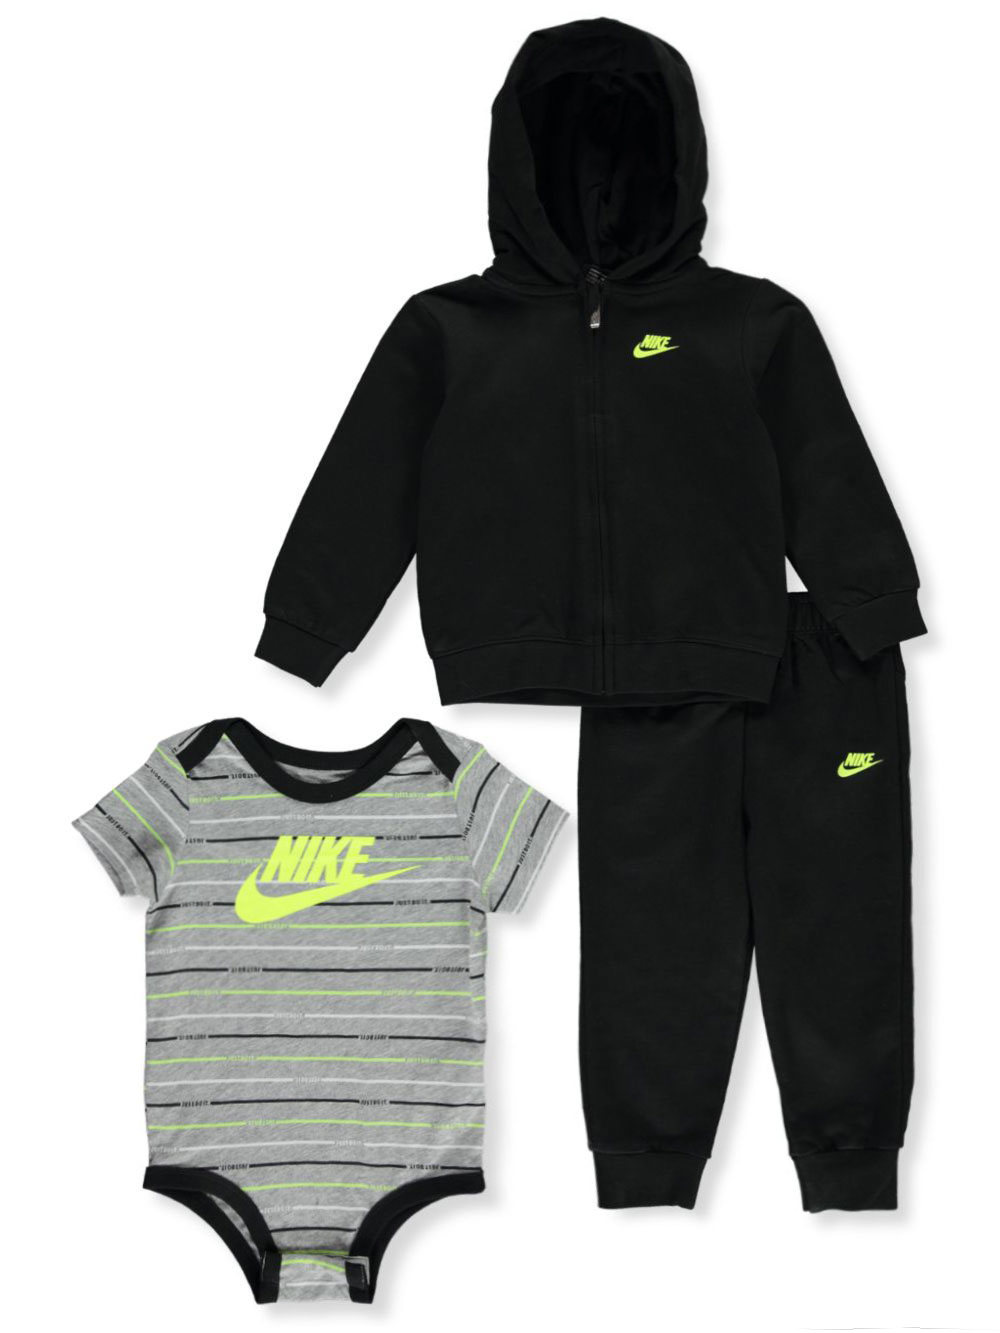 Baby Boys' 3-Piece Joggers Set Outfit